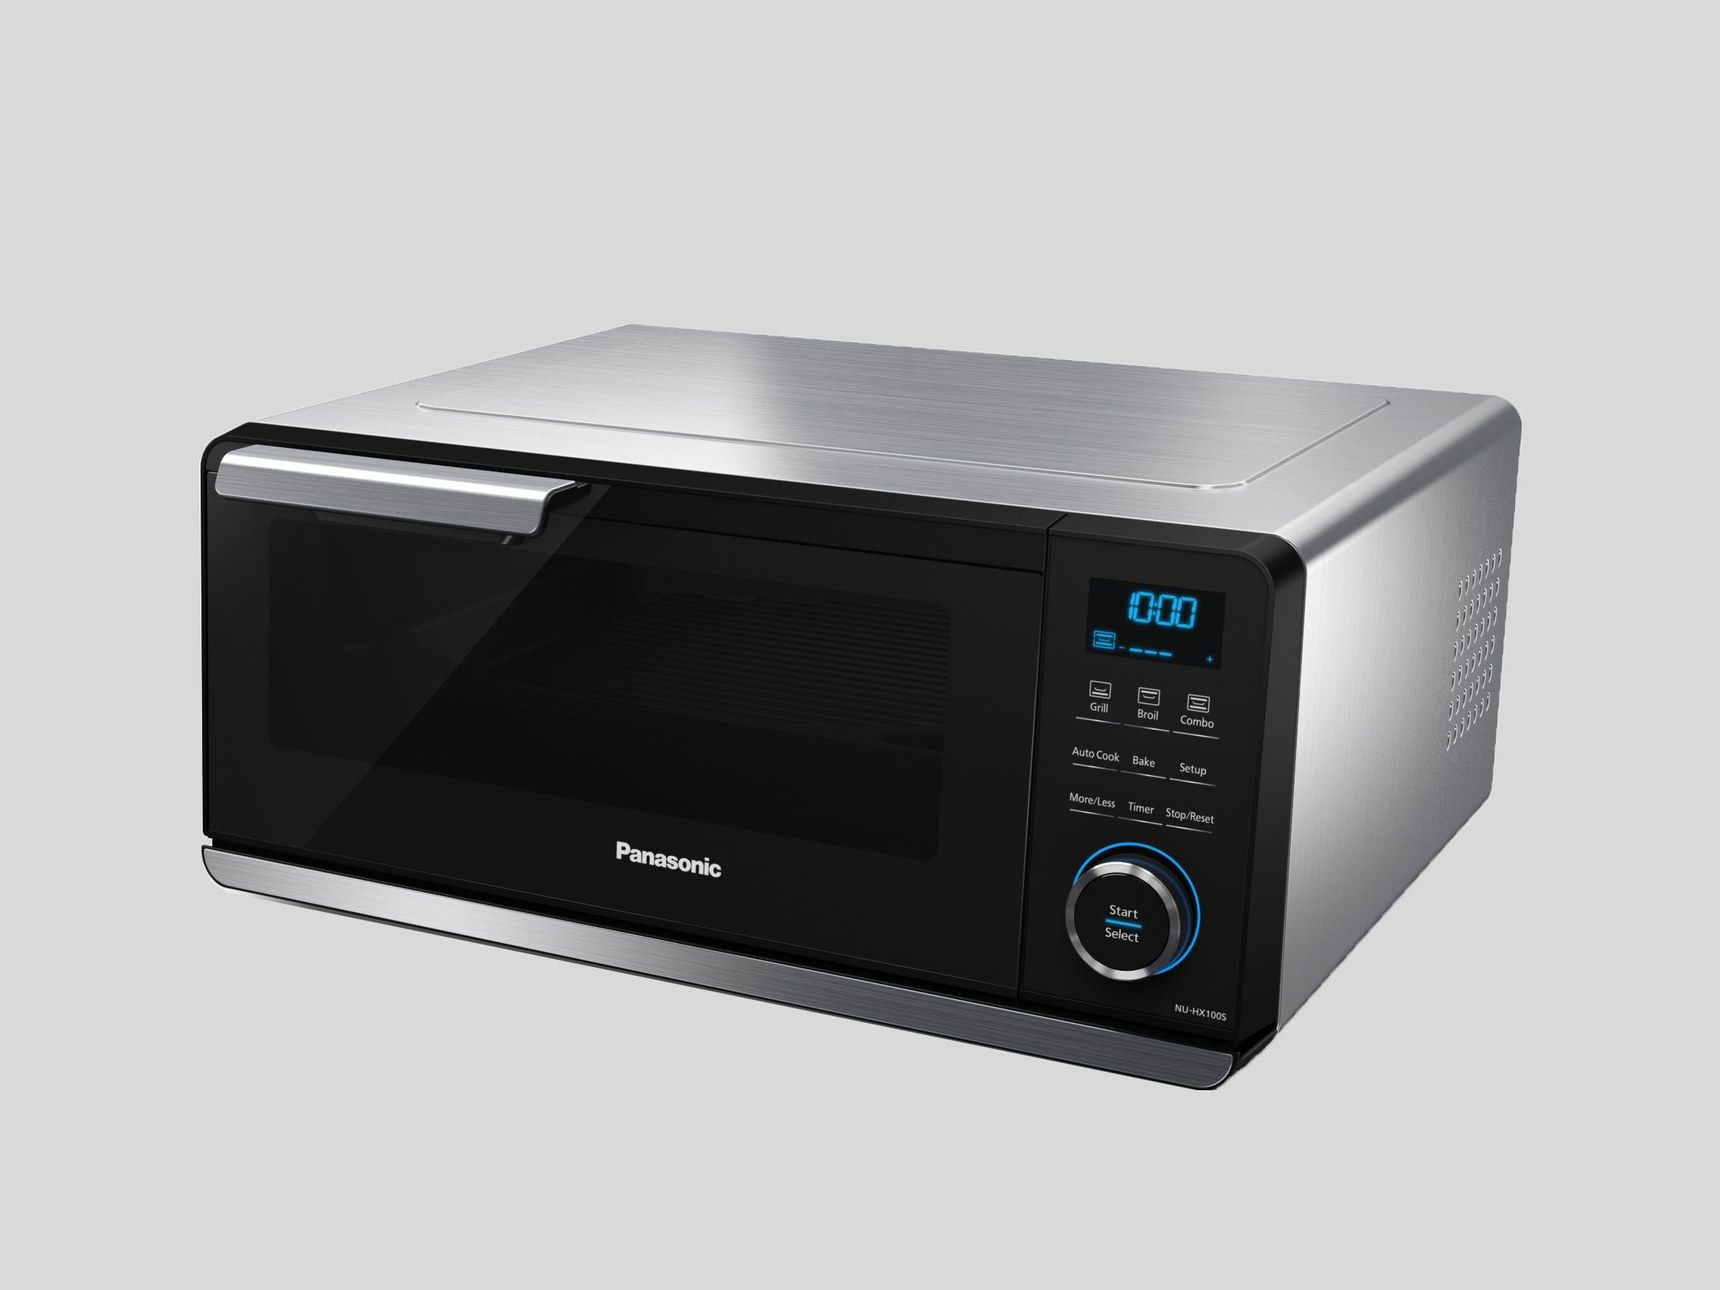 Review Panasonic Countertop Induction Oven Isn T Worth Getting